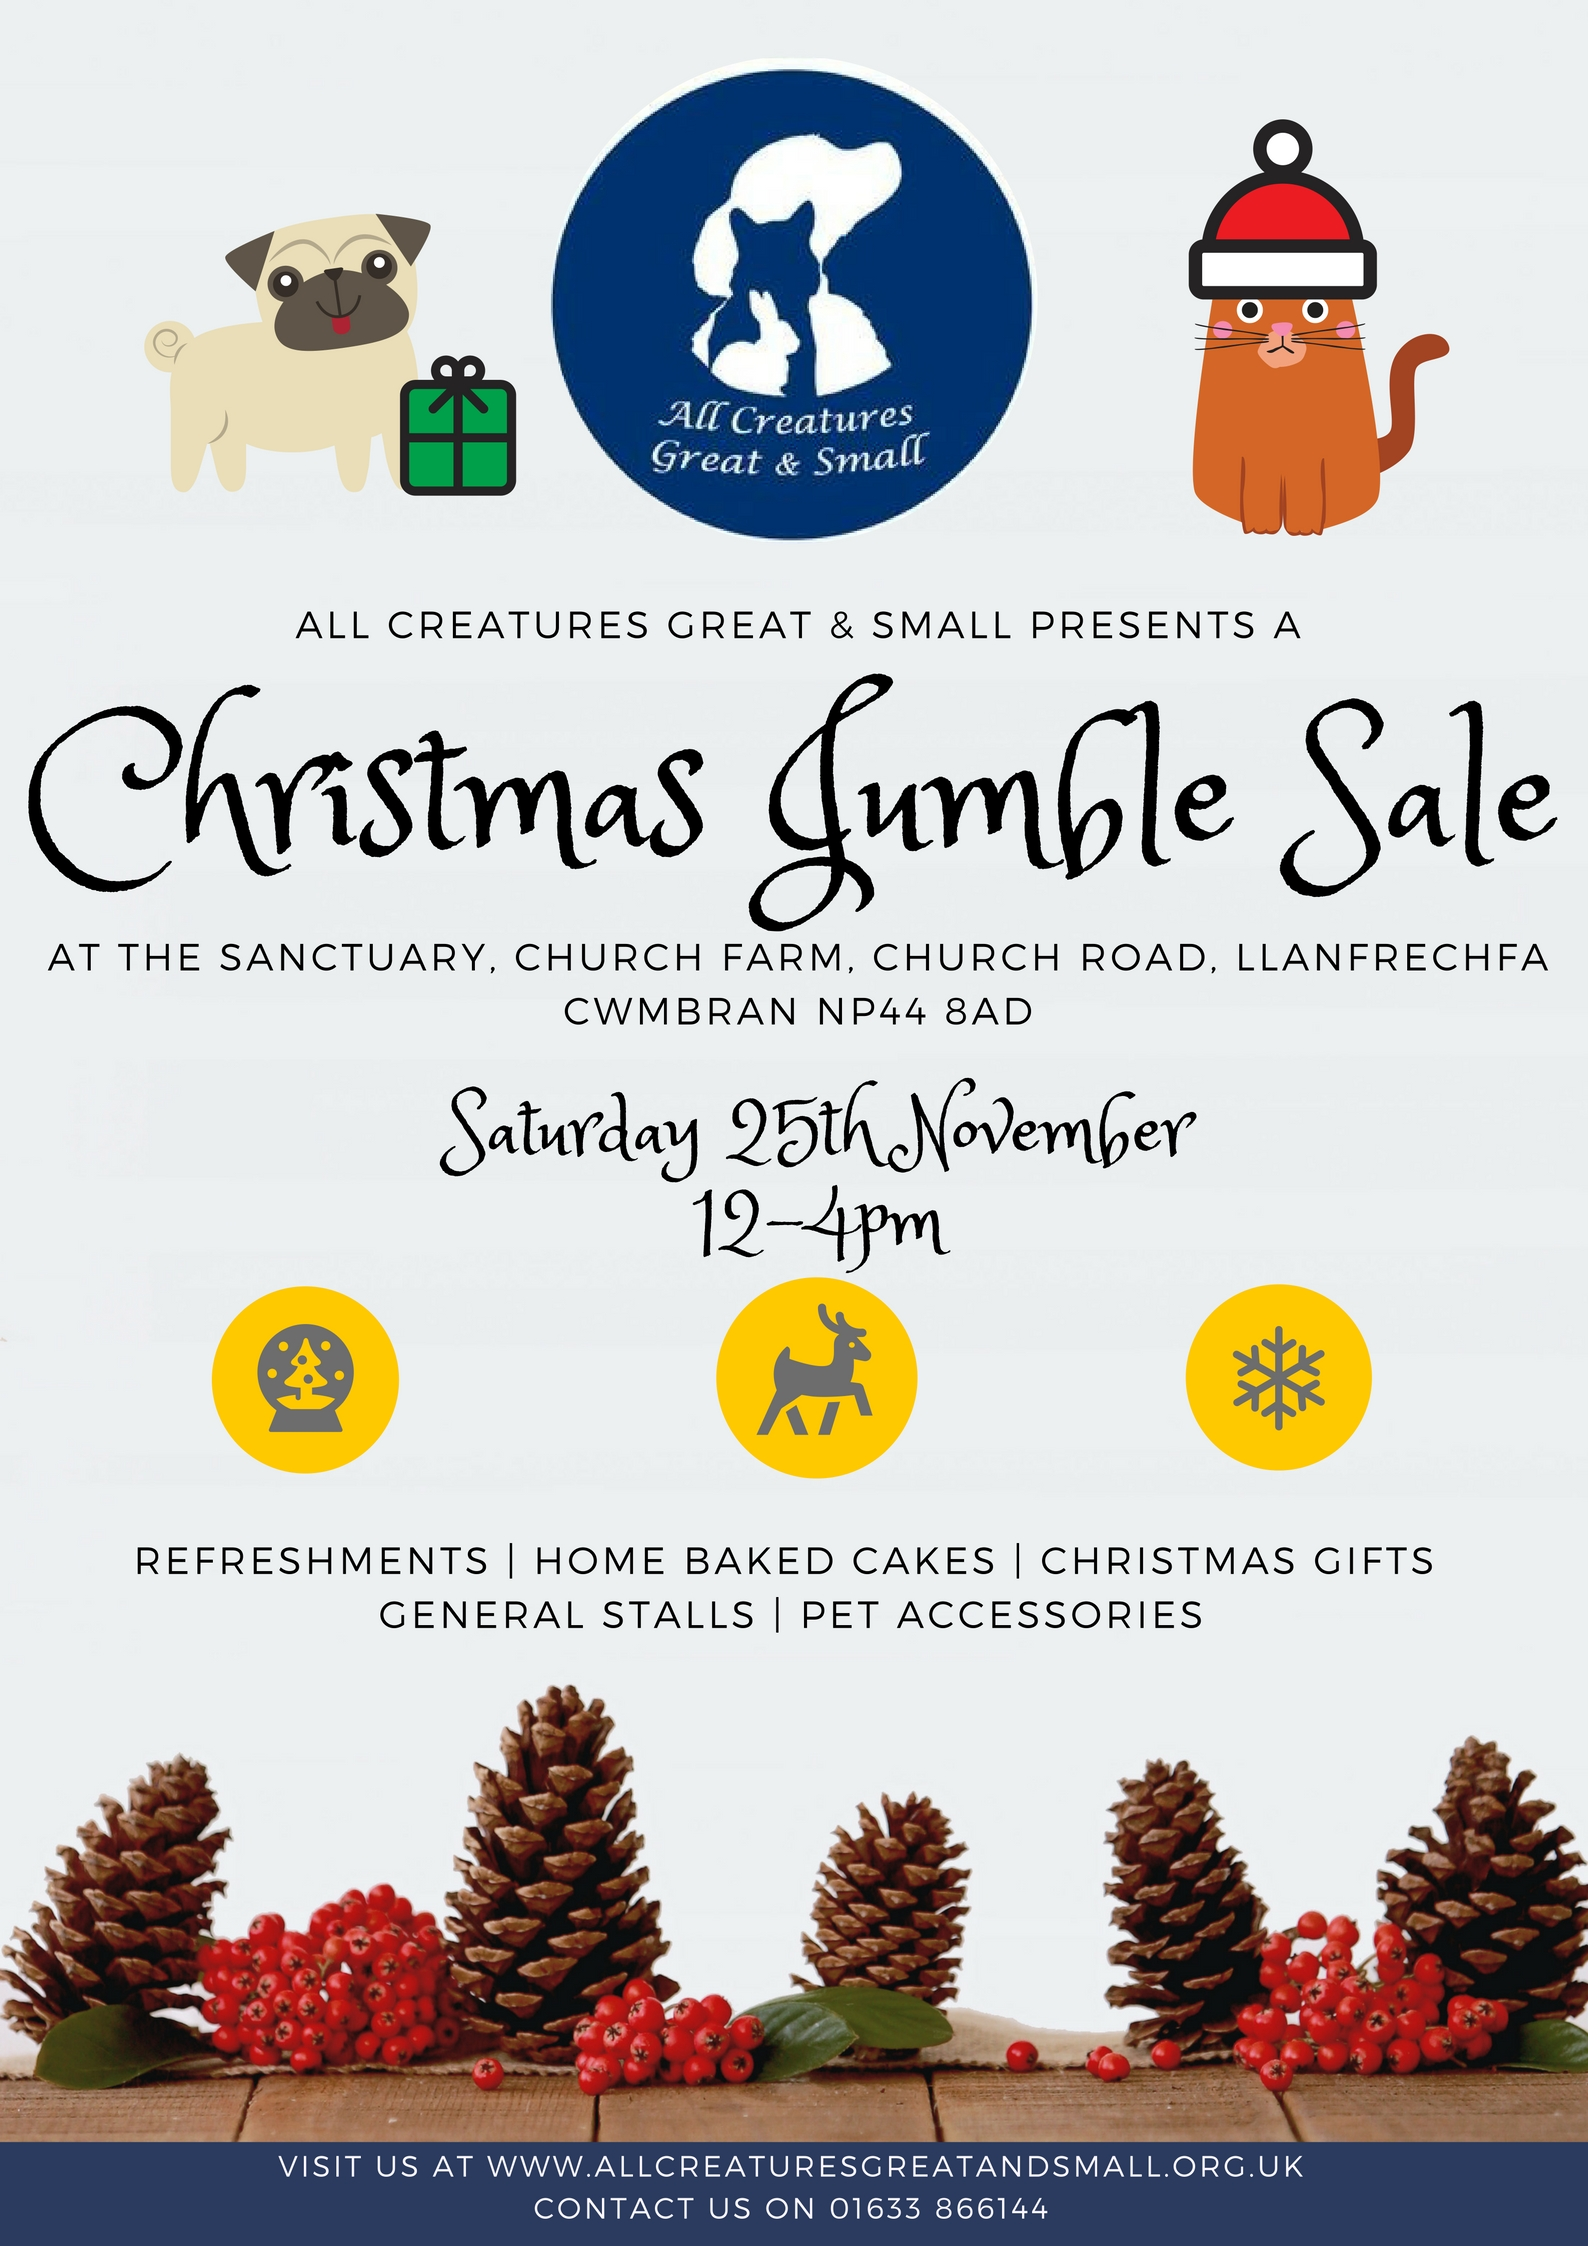 All Creatures Great & Small Christmas Jumble Sale